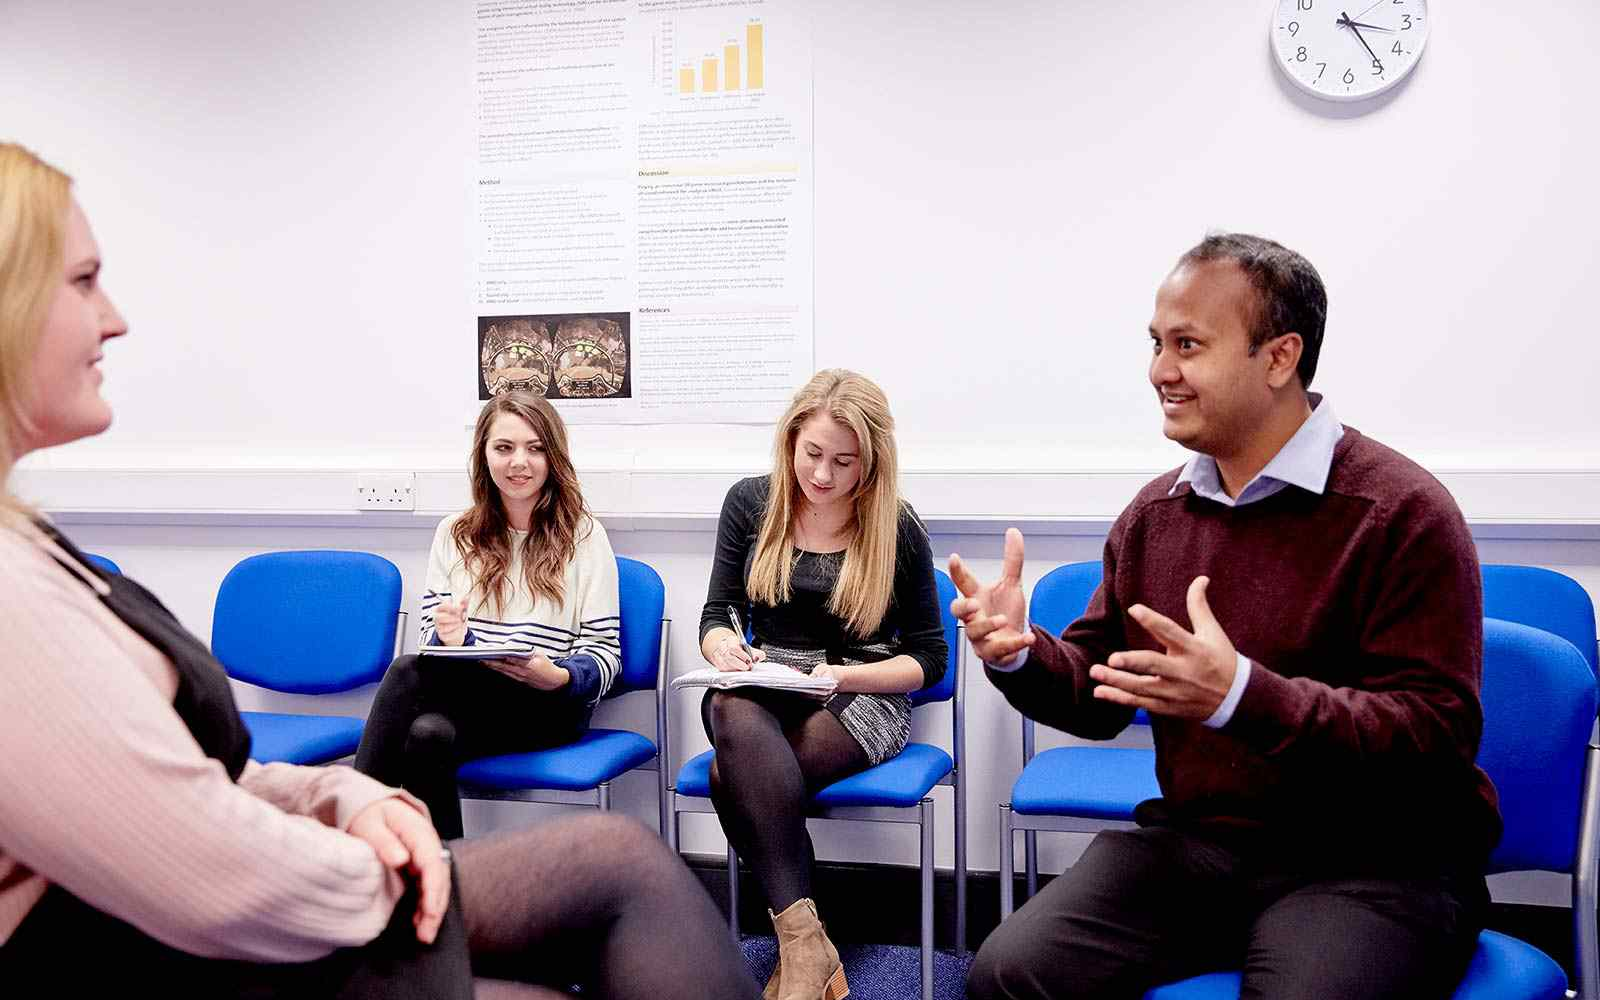 psychology with counselling students in classroom